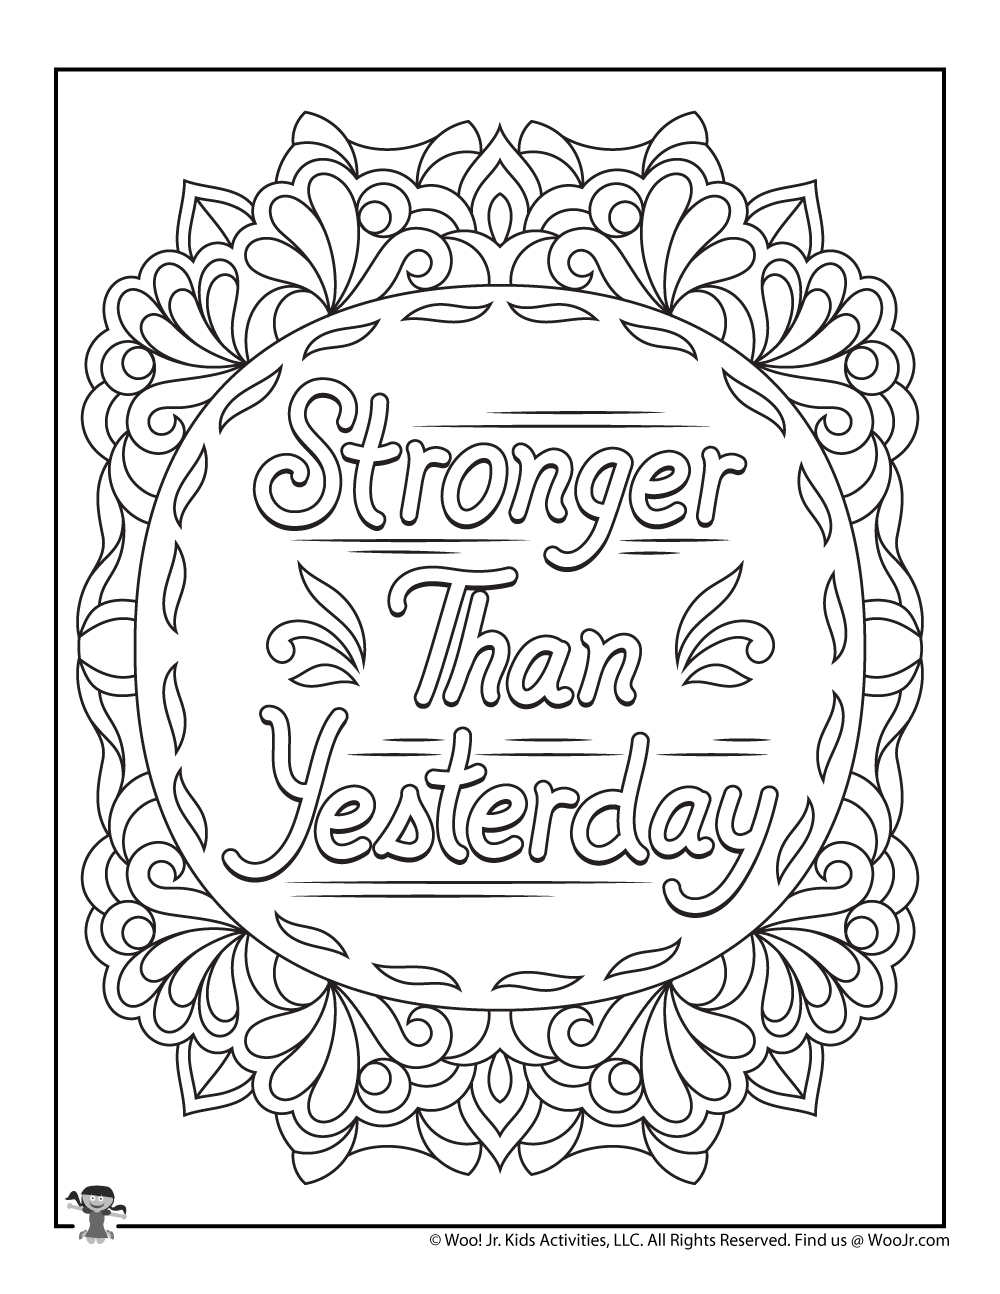 Stronger Than Yesterday Positive Coloring Page For Teens Woo Jr Kids Activities